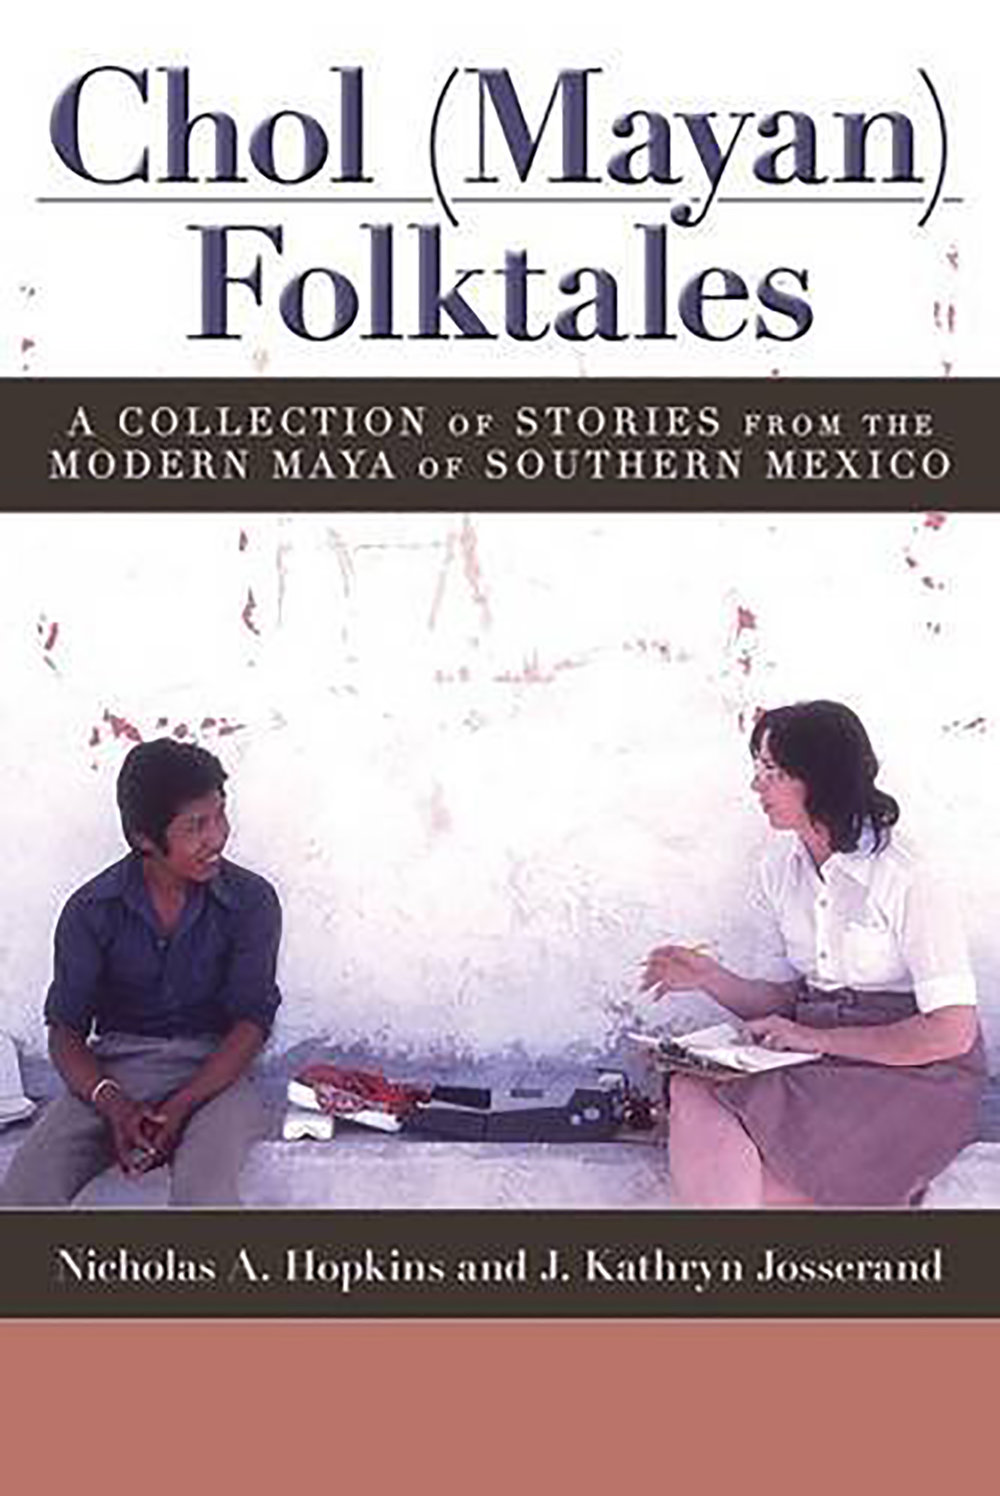 cool mayan folktales a collection of stories